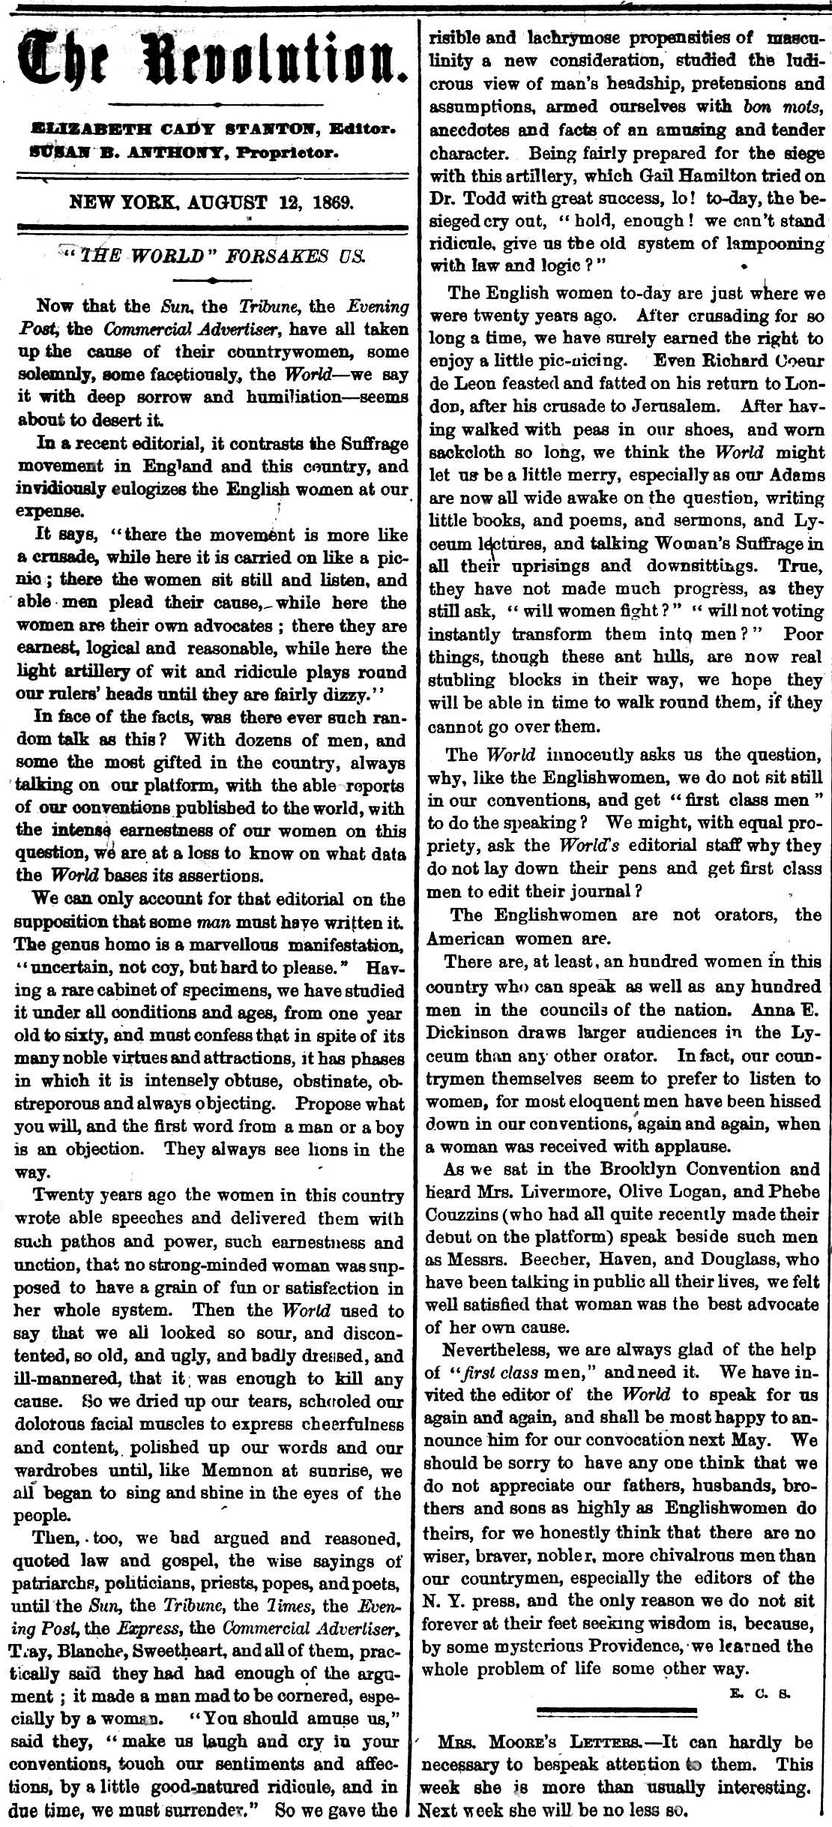 The-Revolution-Susan-B.-Anthony's-Suffrage-Women's-Rights-Newspaper-August-12,-1869